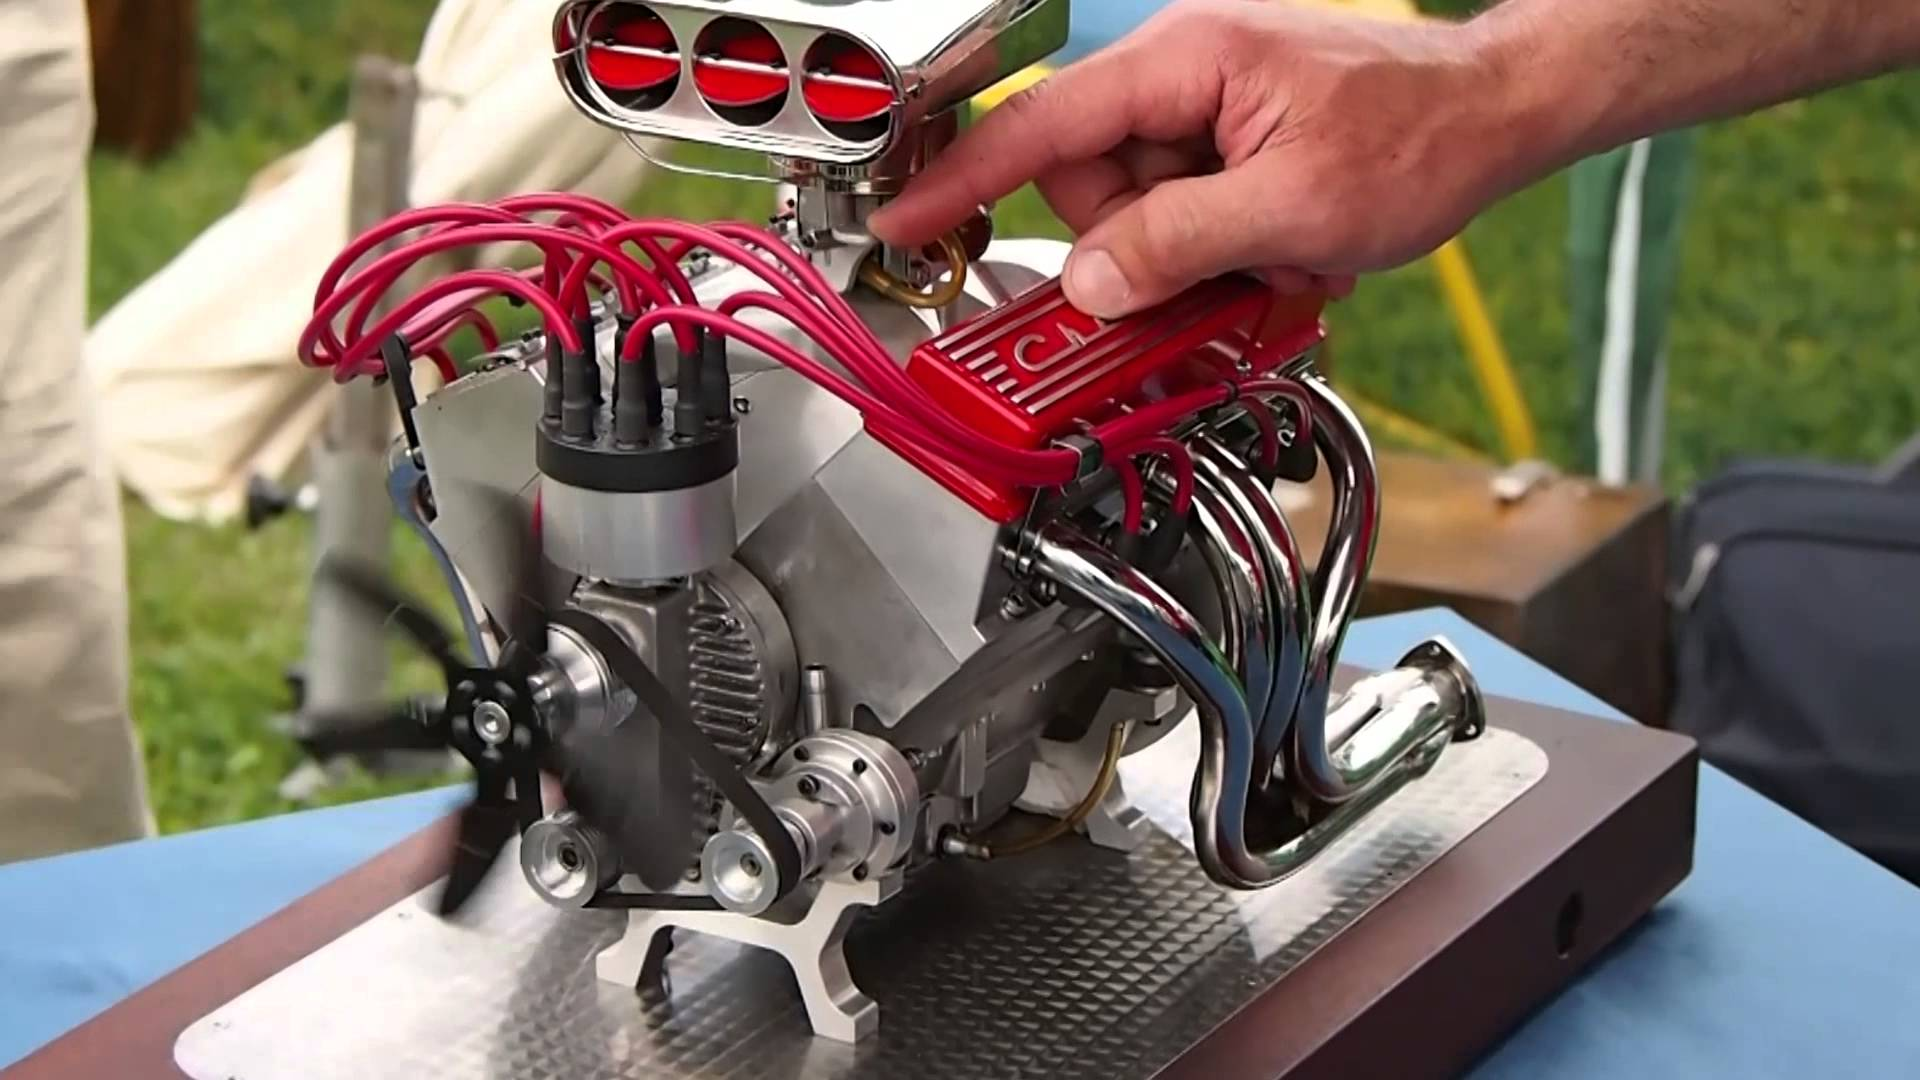 Epic Miniature Chevy V8 Will Make You Fall In Love With It